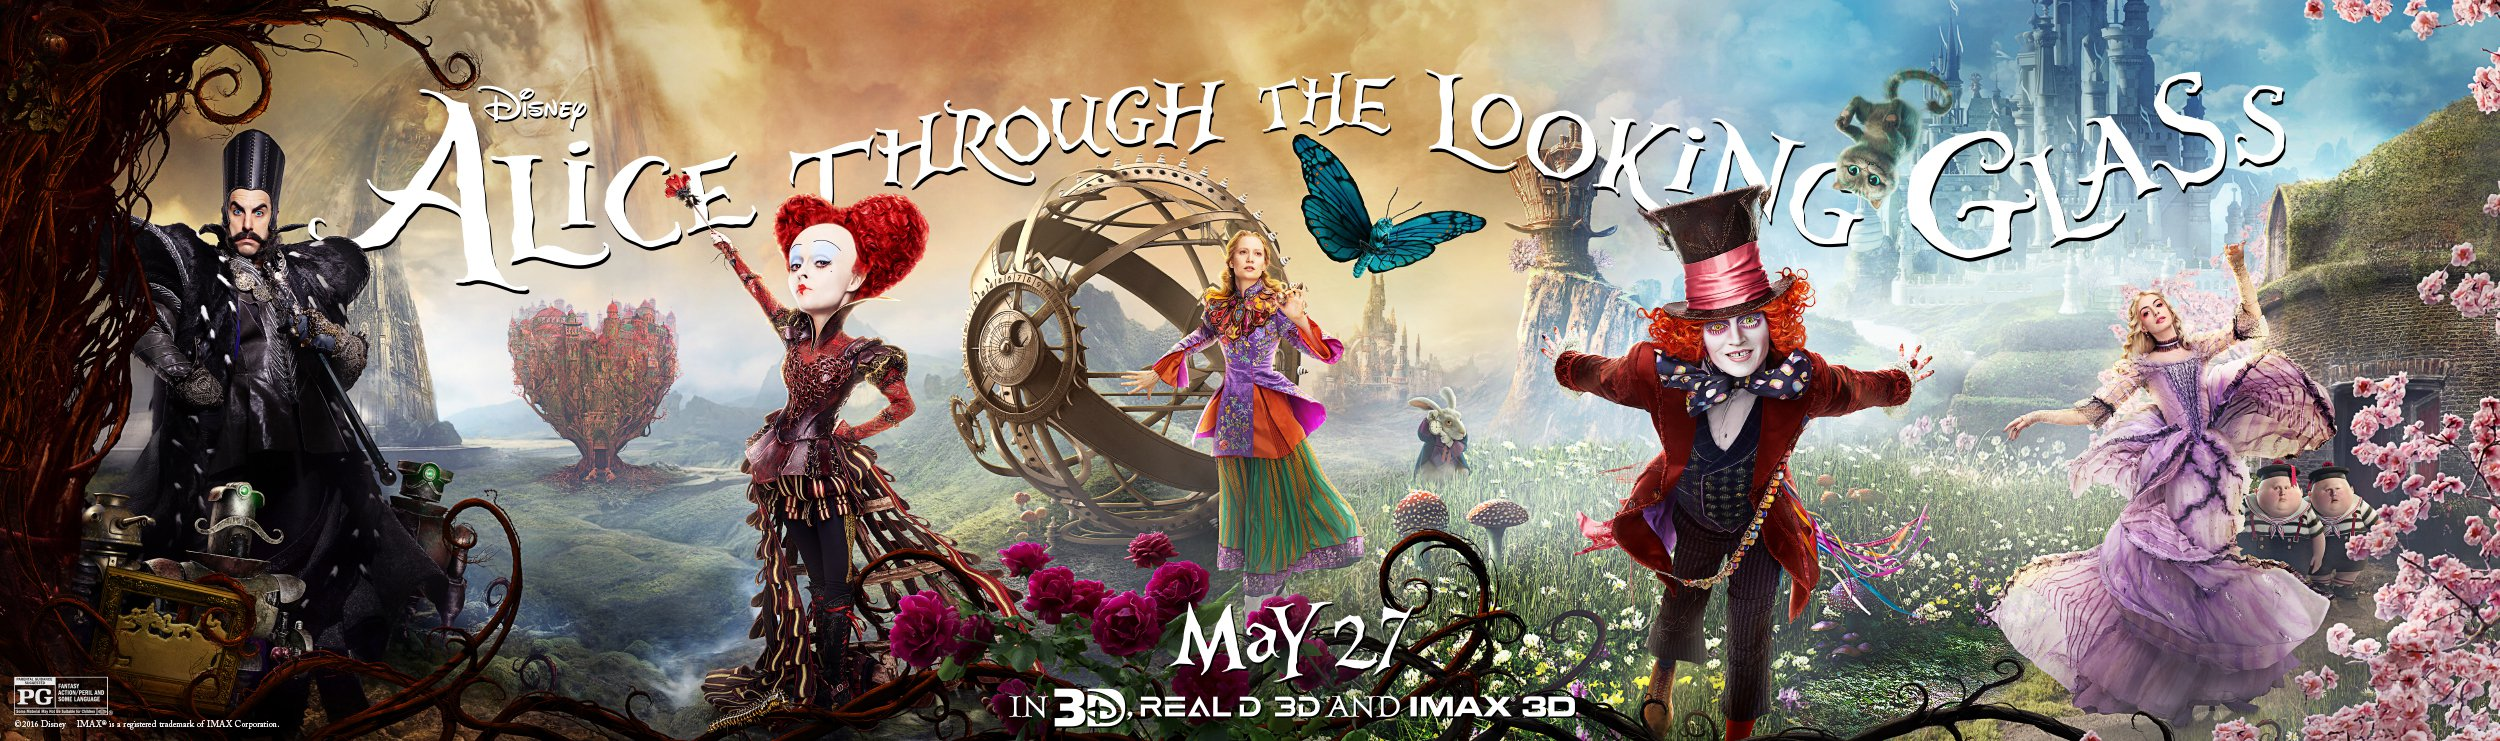 Alice Through The Looking Glass Gets Wild New Trailer And